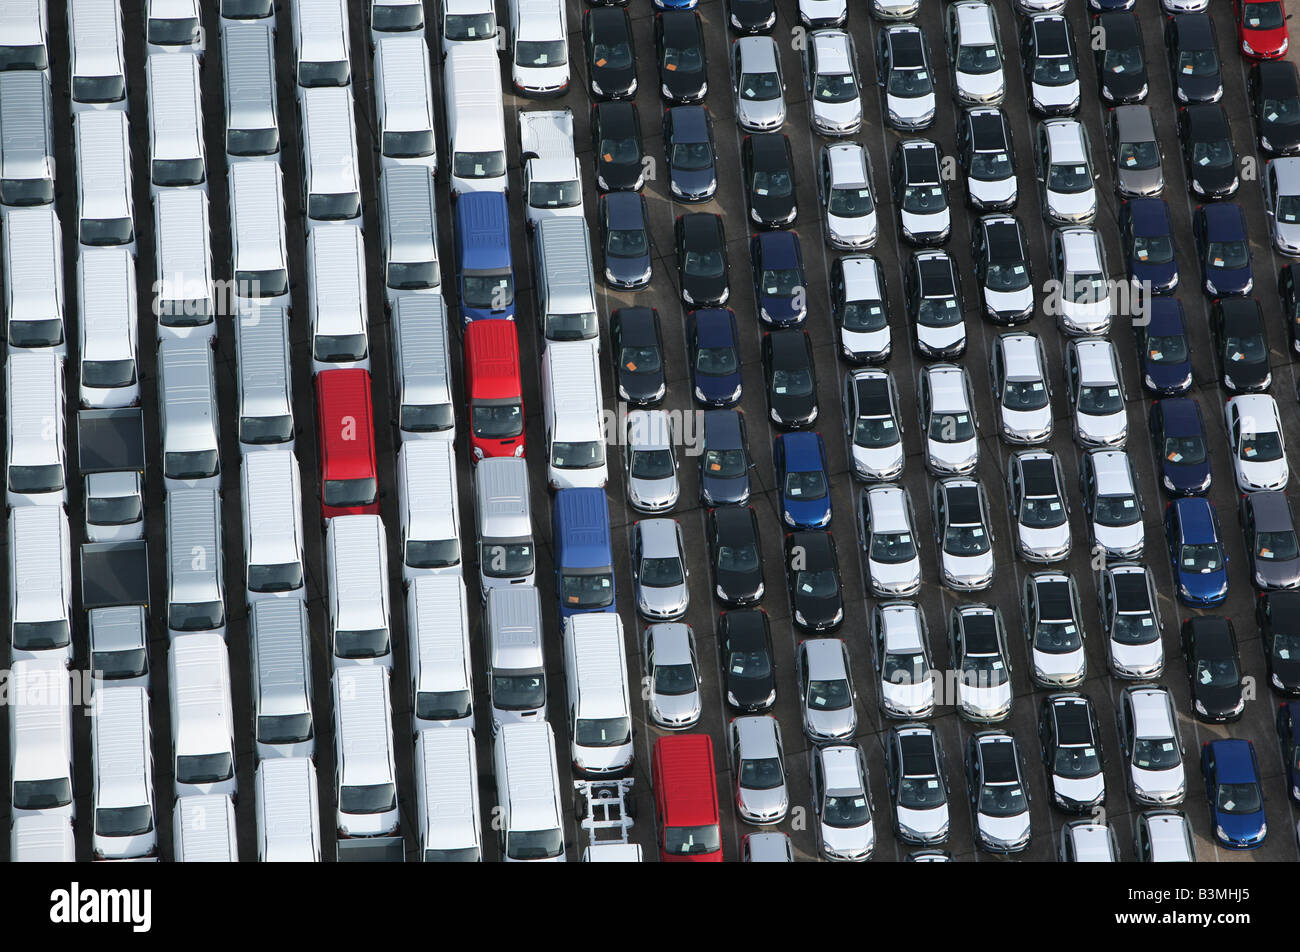 Cars and vans lined up at Southampton docks. - Stock Image